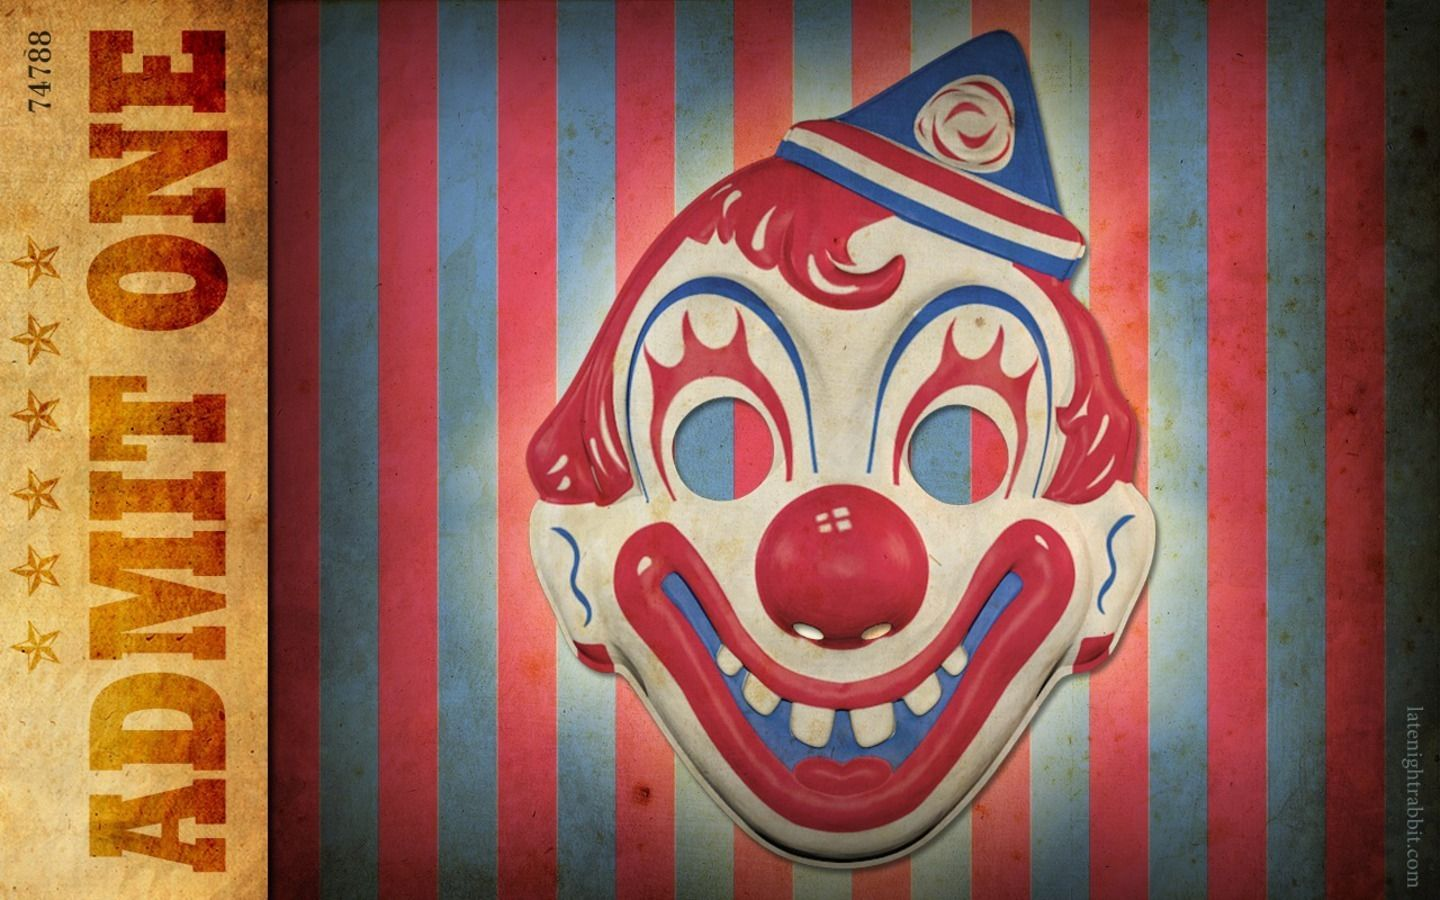 Wallpaper of circus clown for fans of circus and carnivals - Circus joker wallpaper ...